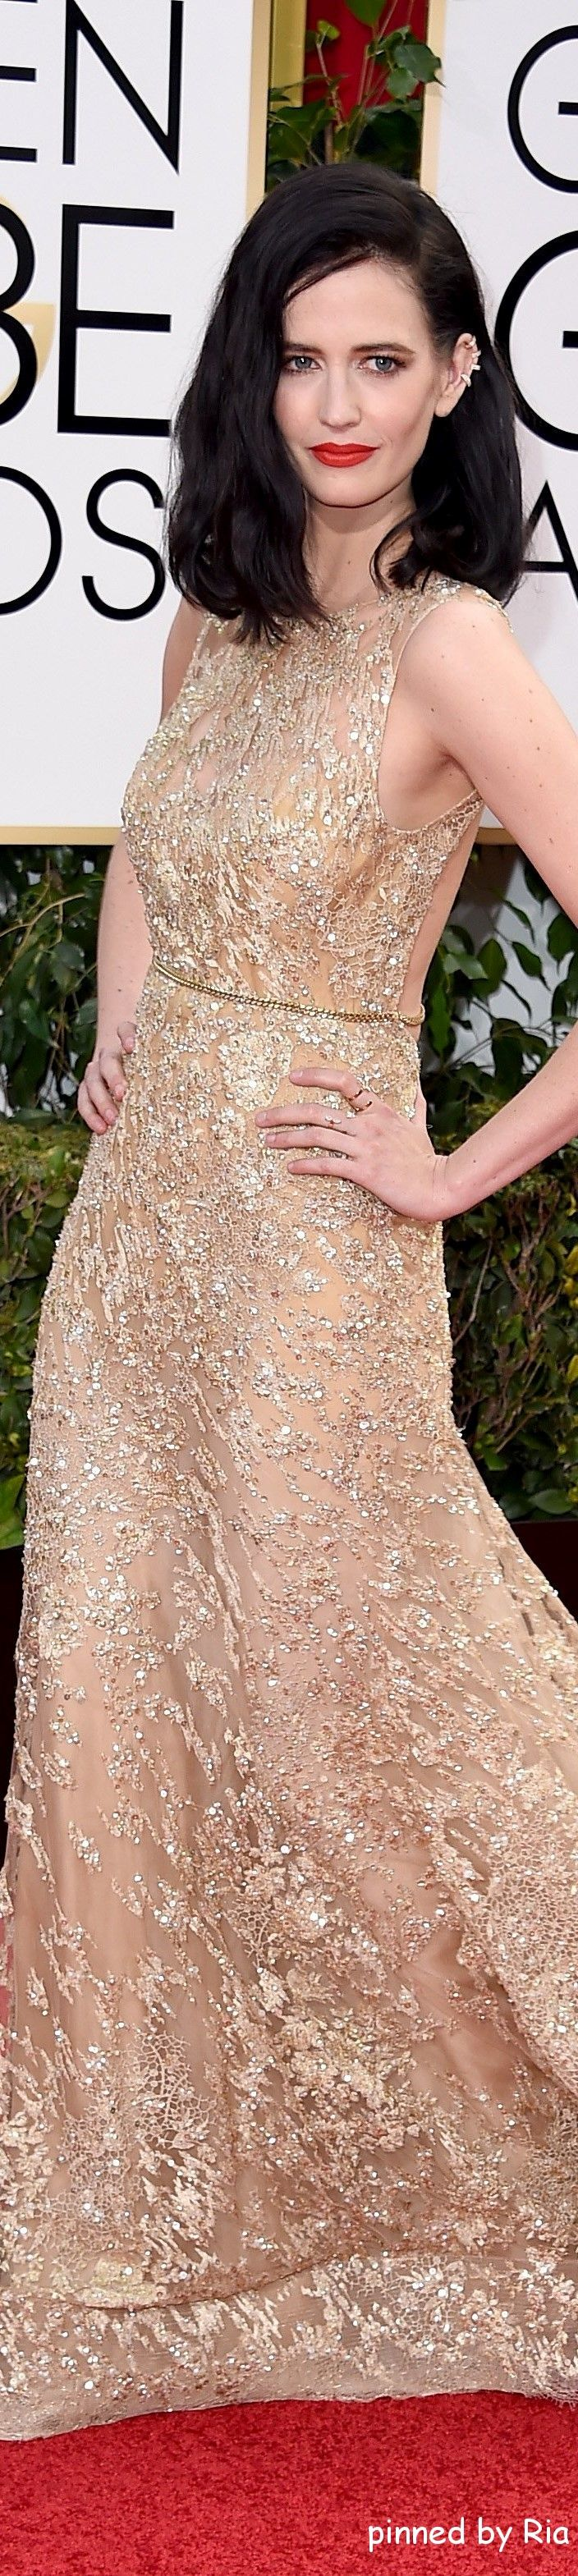 Eva Green in Elie Saab Haute Couture l Golden Globe Awards 2016 l Ria